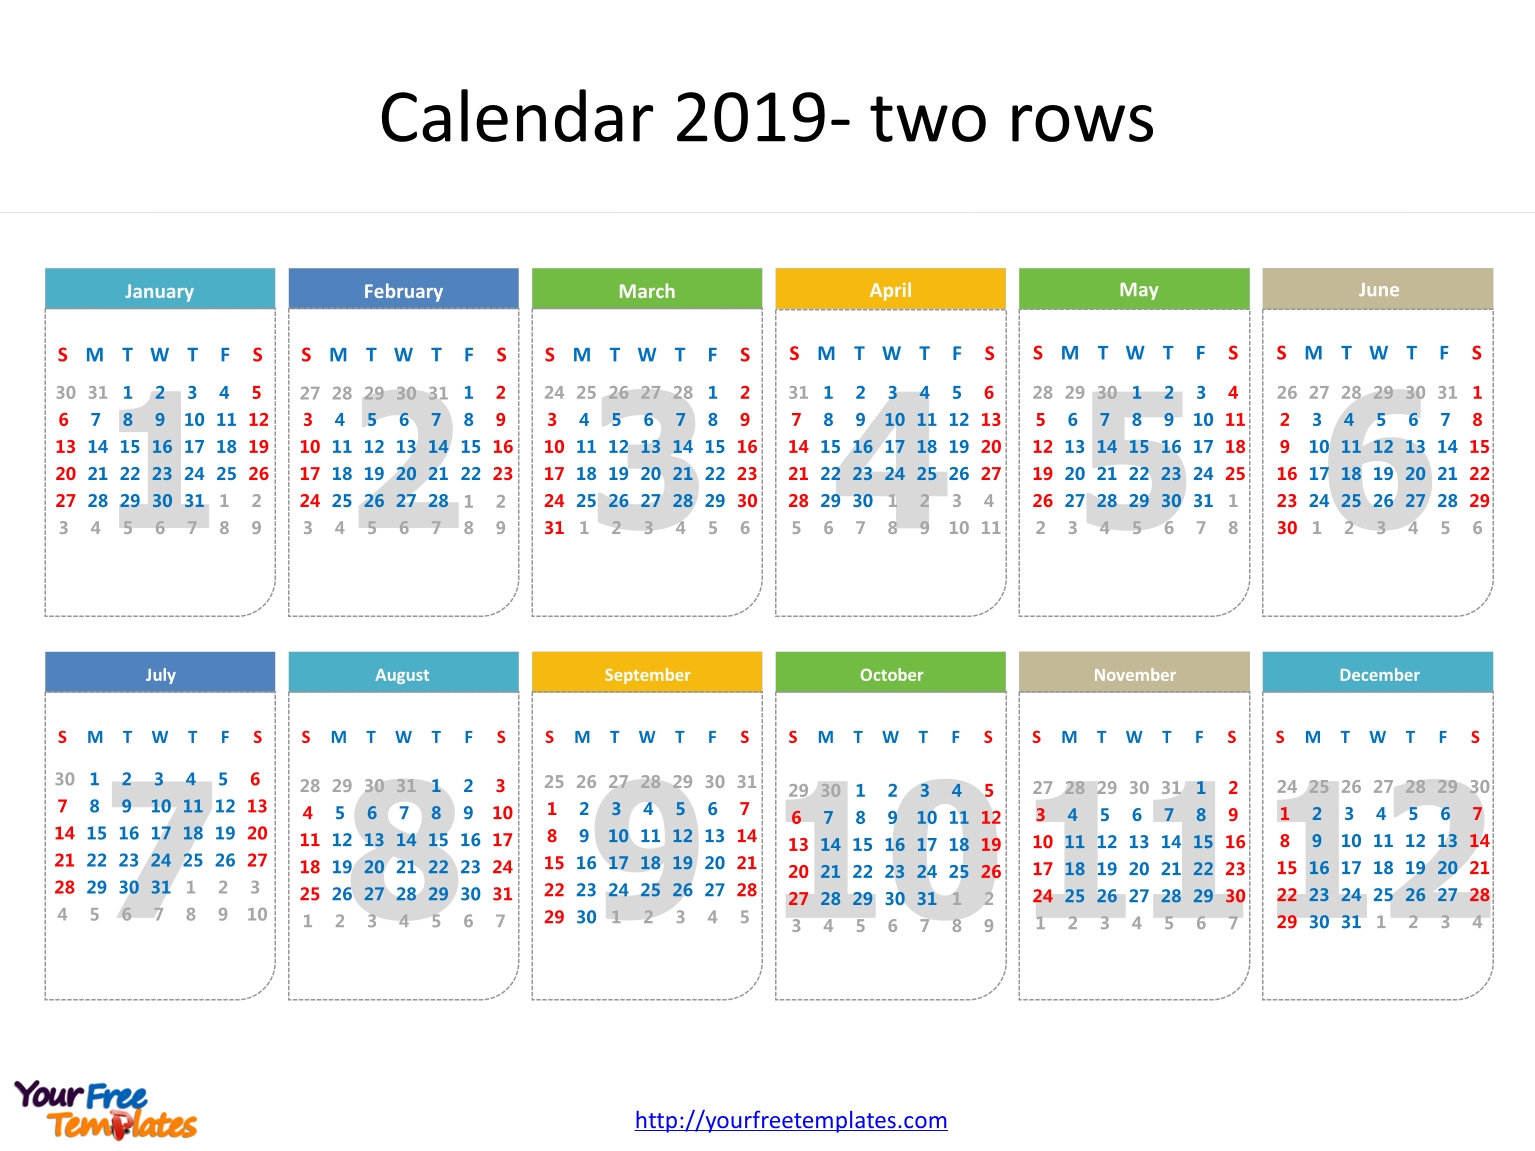 Printable Calendar 2019 Template - Free Powerpoint Templates intended for Printable Date To Date Calendar